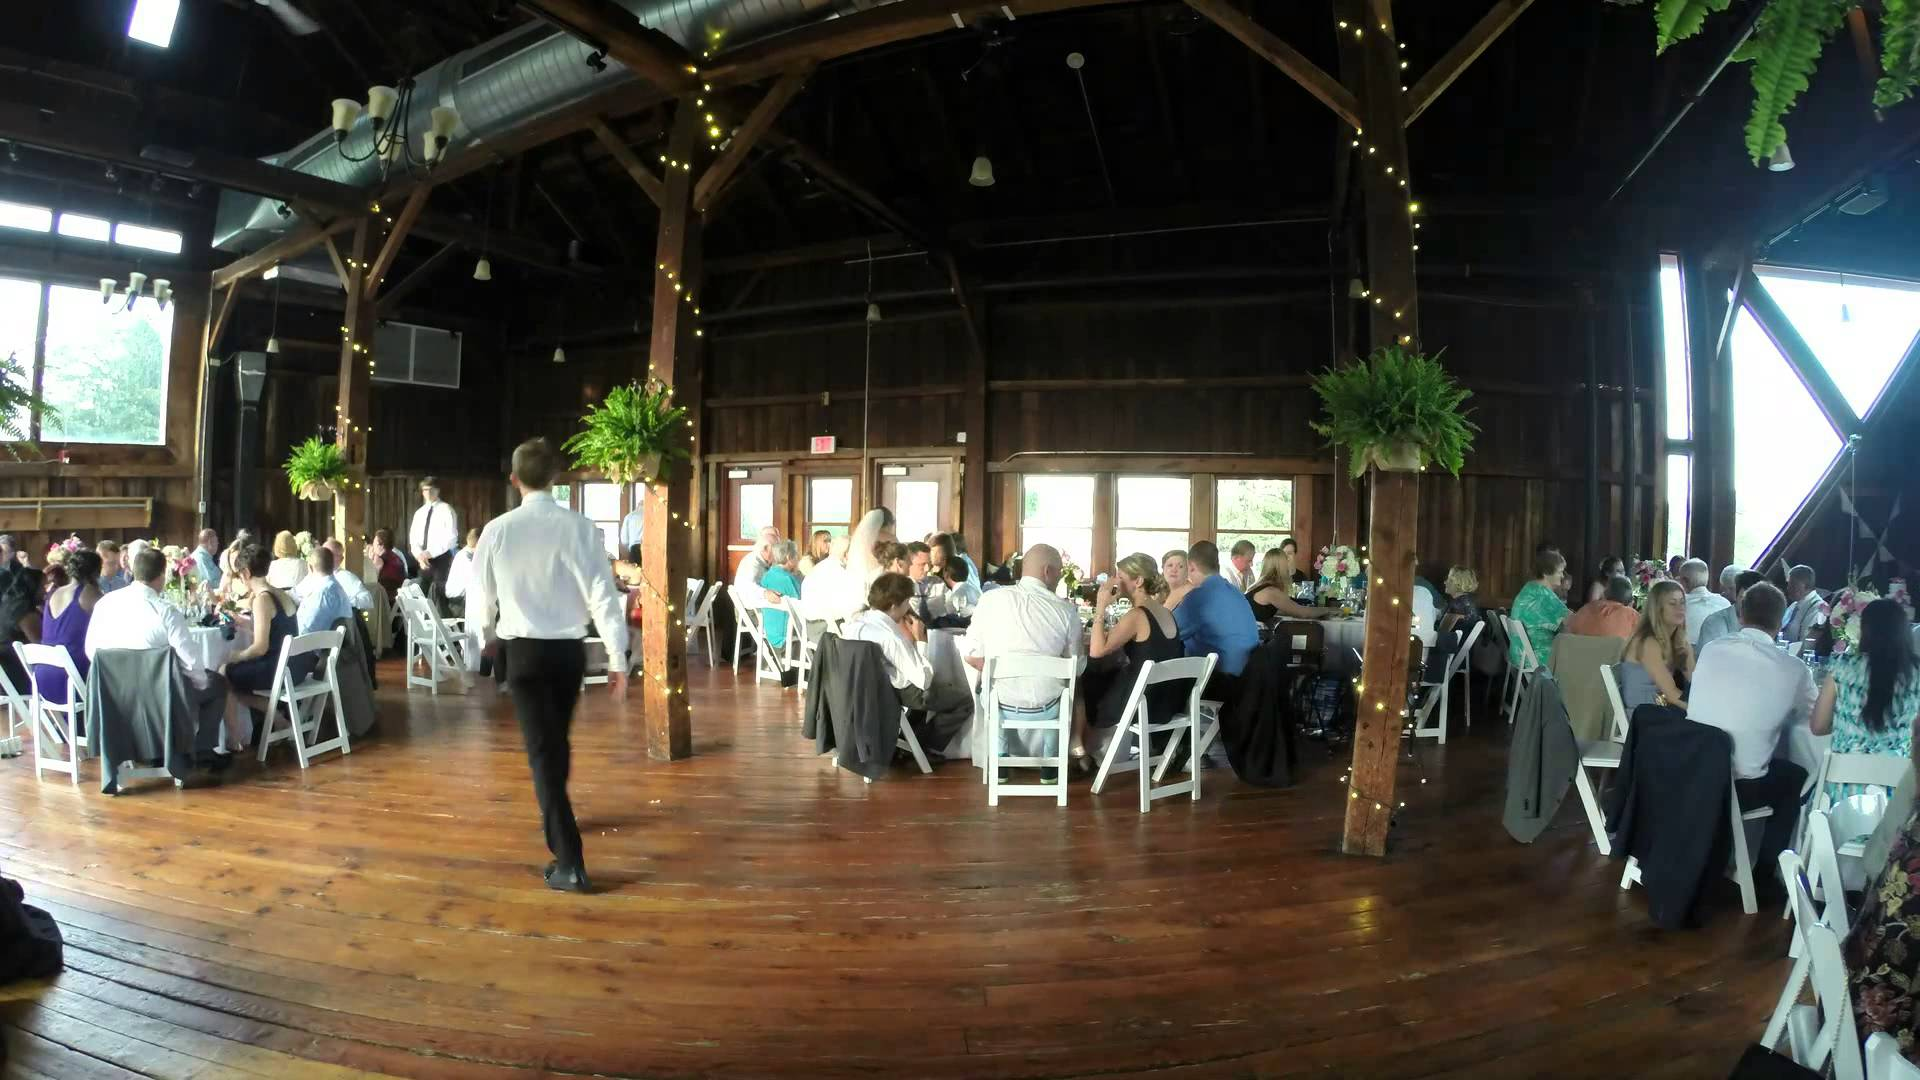 show 79 12 10 88 the red barn at hampshire college \u2013 amherst, mathe interior of the red barn during a wedding